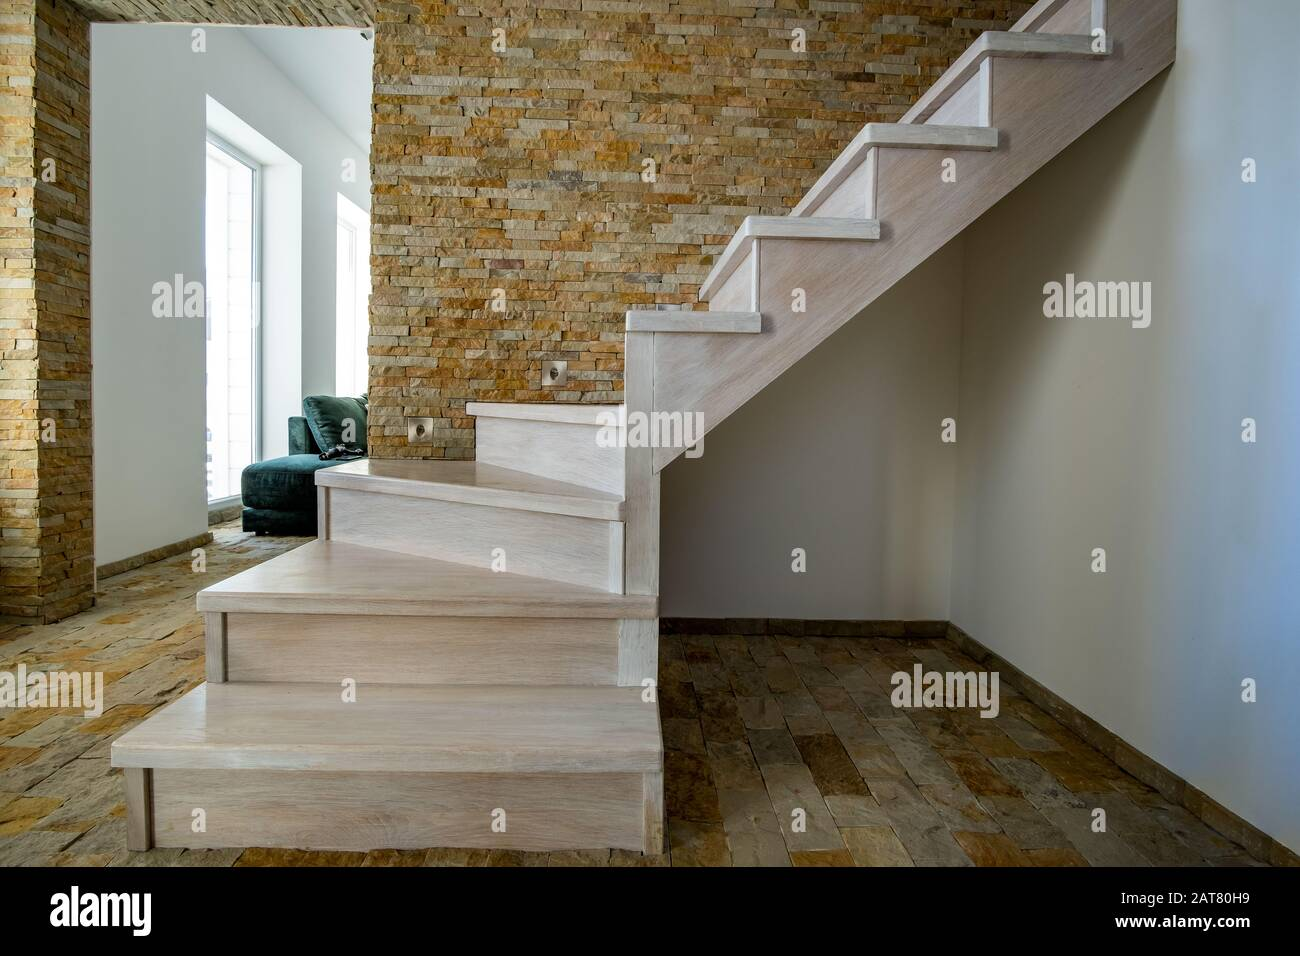 Stylish Wooden Contemporary Staircase Inside Loft House Interior Modern Hallway With Decorative Limestone Brick Walls And White Oak Stairs Stock Photo Alamy